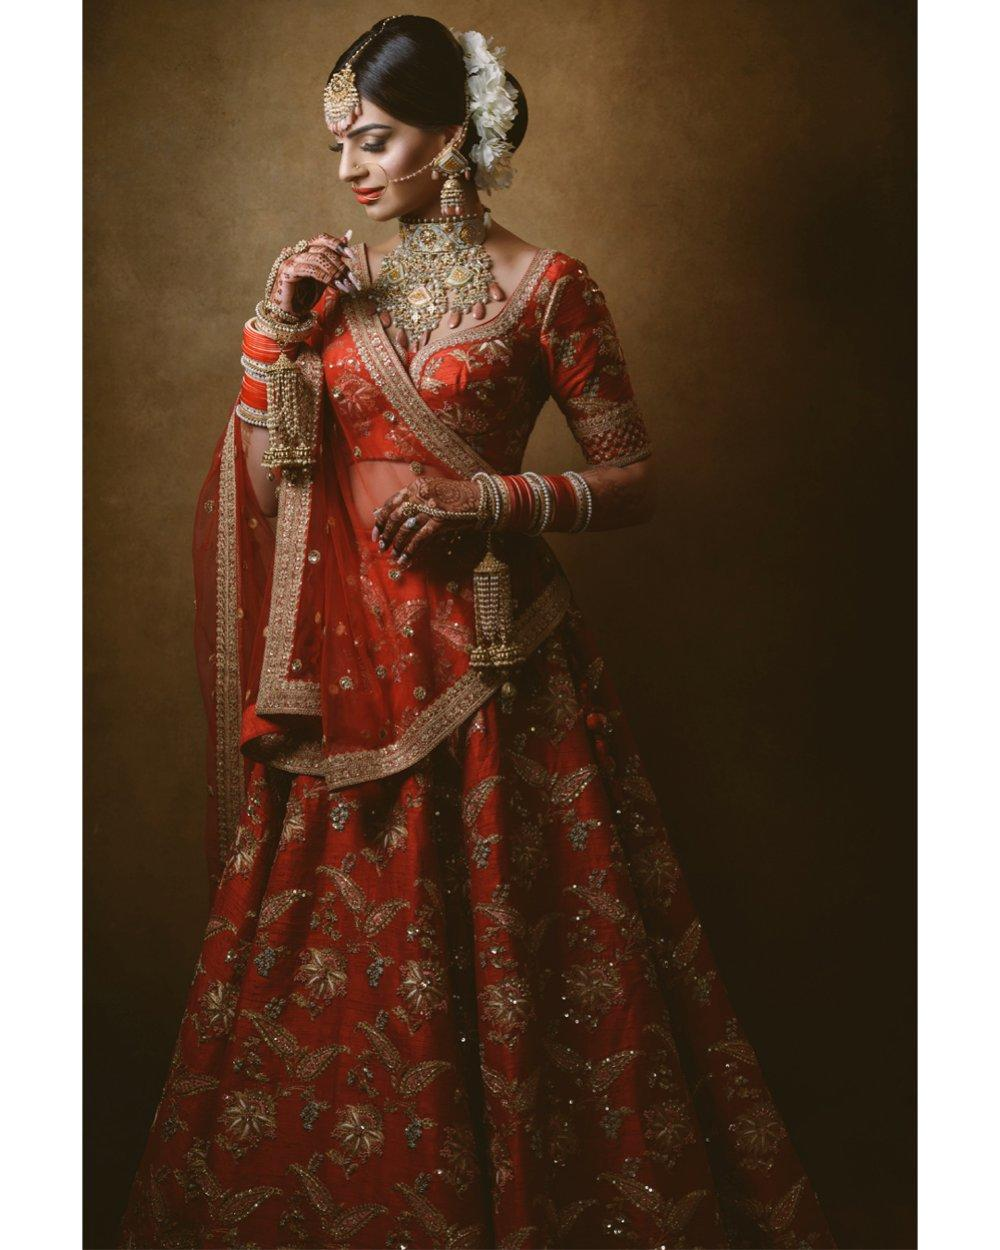 A bride posing in a red Indian wedding dress - ShootDotEdit feature of how to navigate gear-specific questions from clients